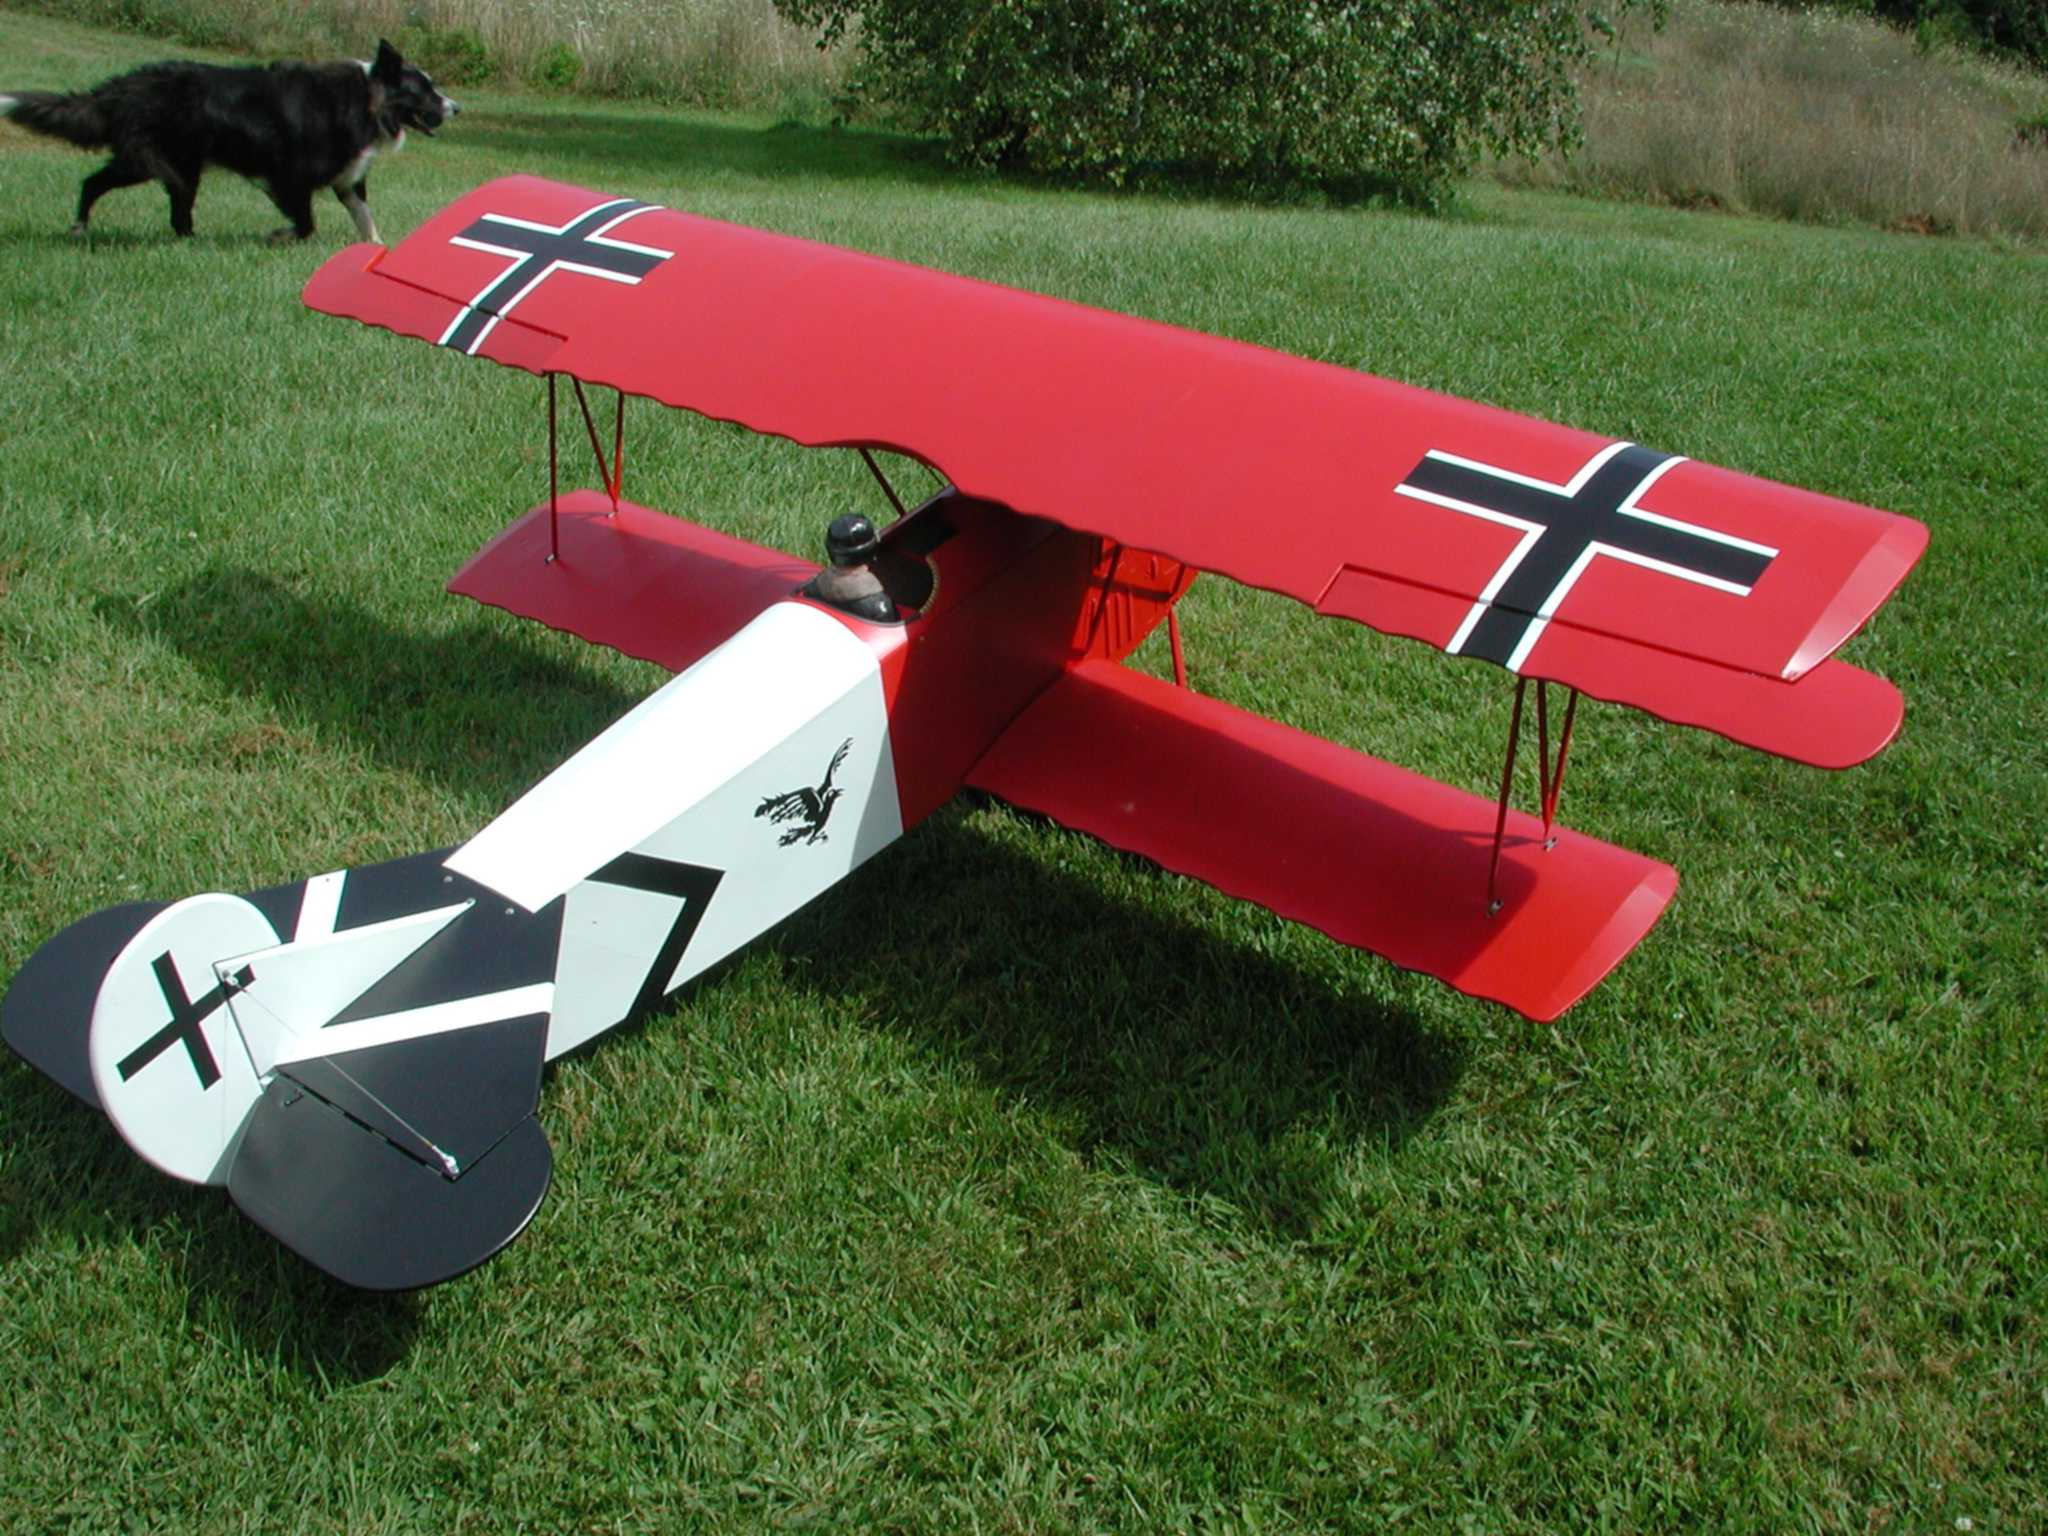 Since I have the documentation material from my old 1/4-scale Fokker I will use it for the new mini Fokker Project